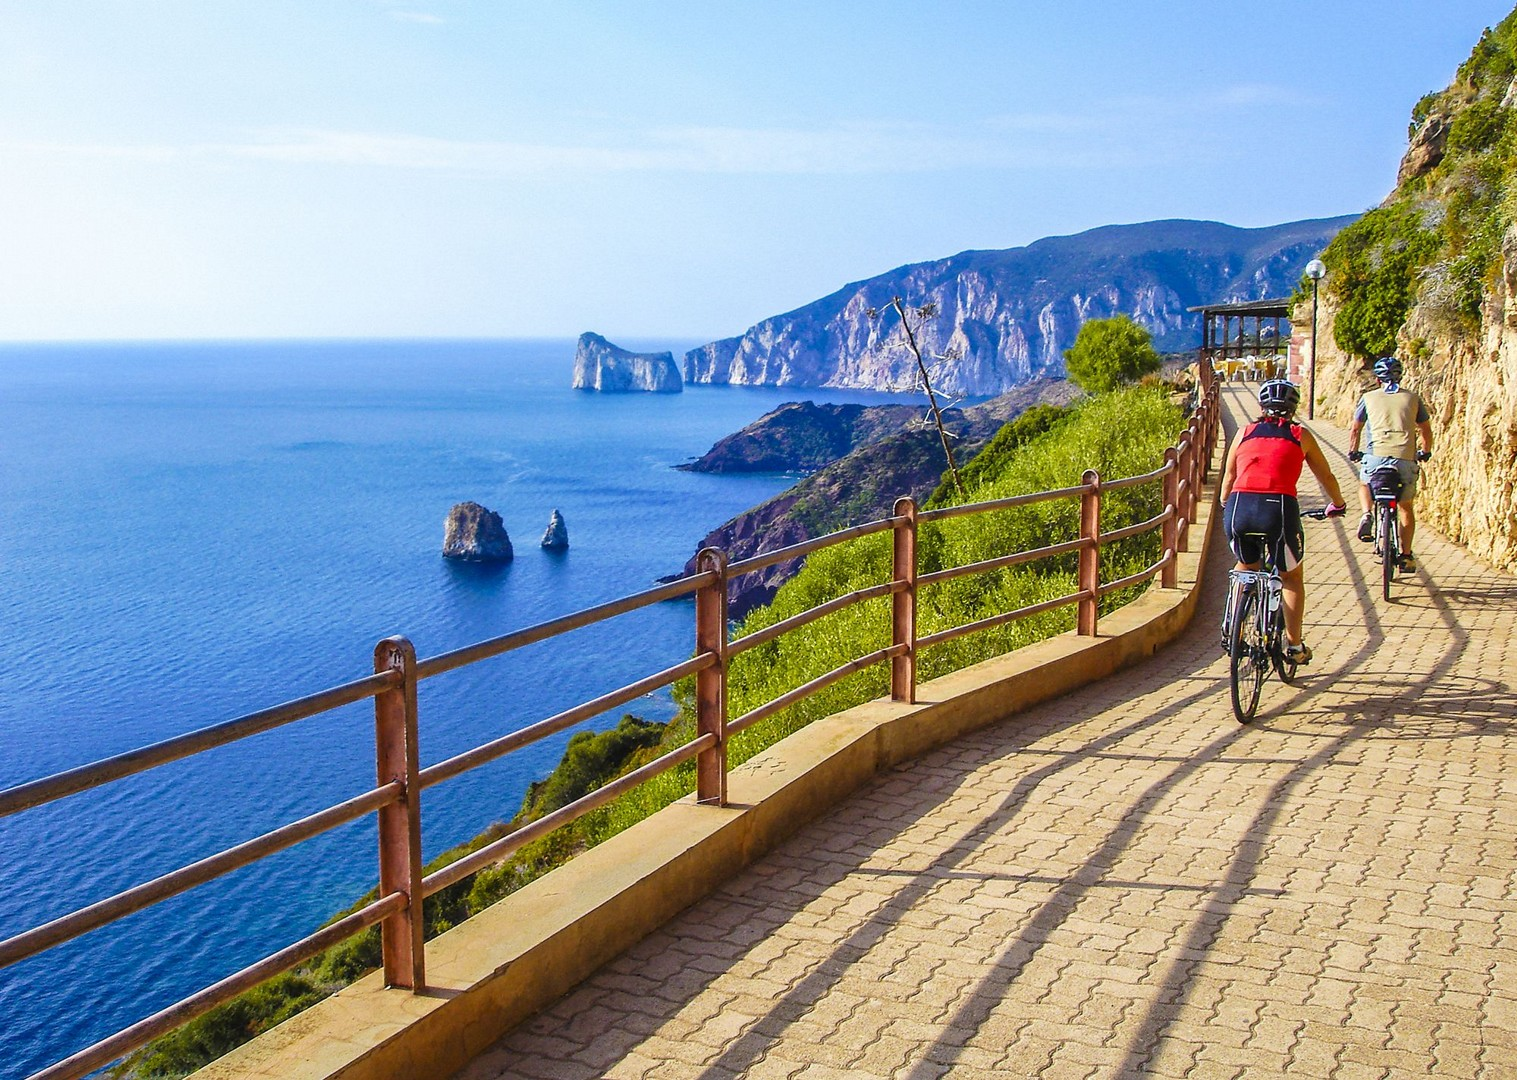 guided-leisure-cycling-along-sardinia-beach-island-flavours-holiday.jpg - Italy - Sardinia - Island Flavours - Guided Leisure Cycling Holiday - Leisure Cycling